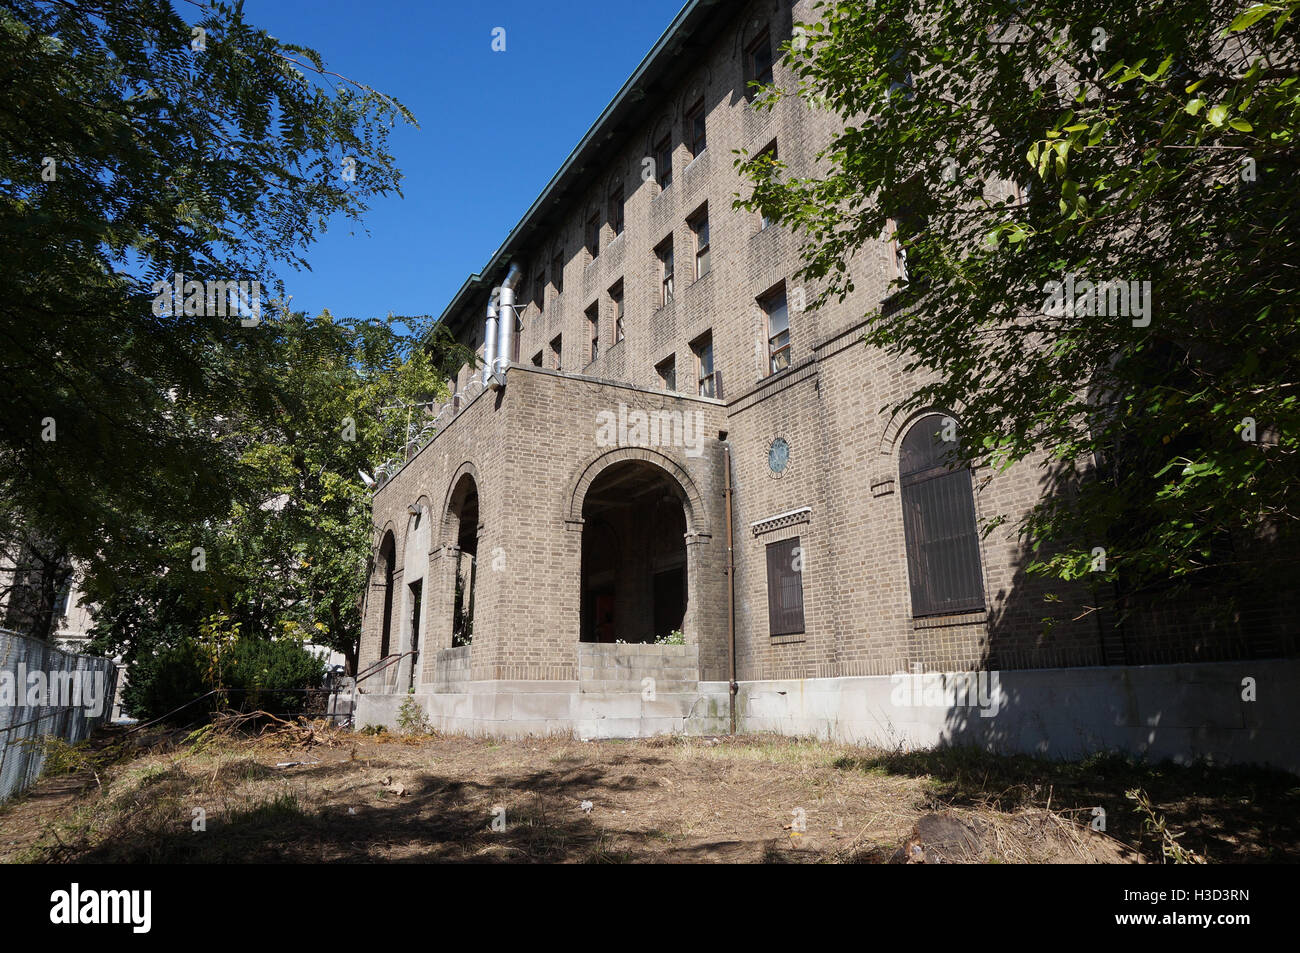 Abandoned Nurses Quarters at Greenpoint Hospital in Brooklyn - Stock Image